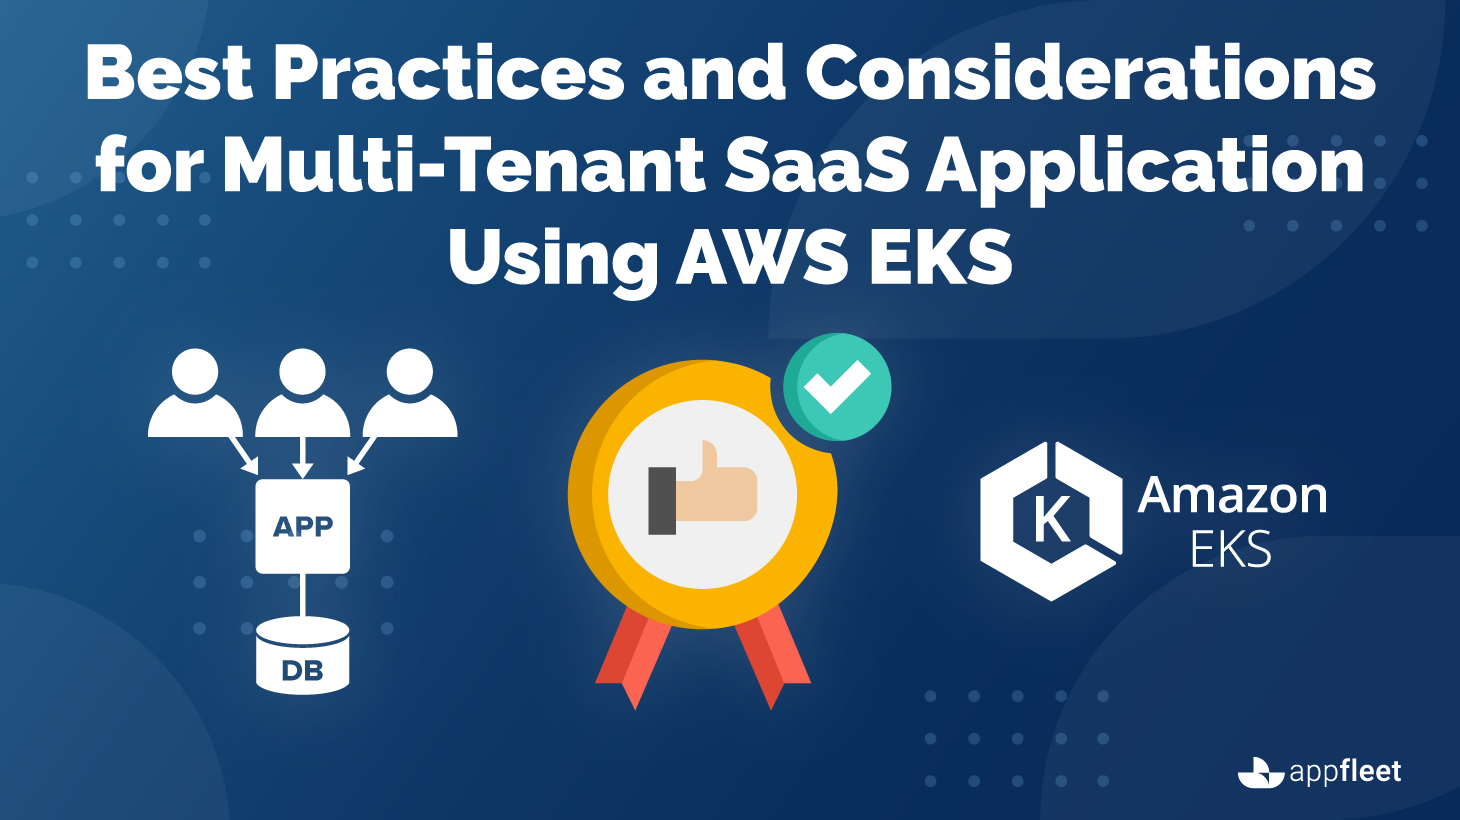 Best Practices for Multi-Tenant SaaS Application Using AWS EKS